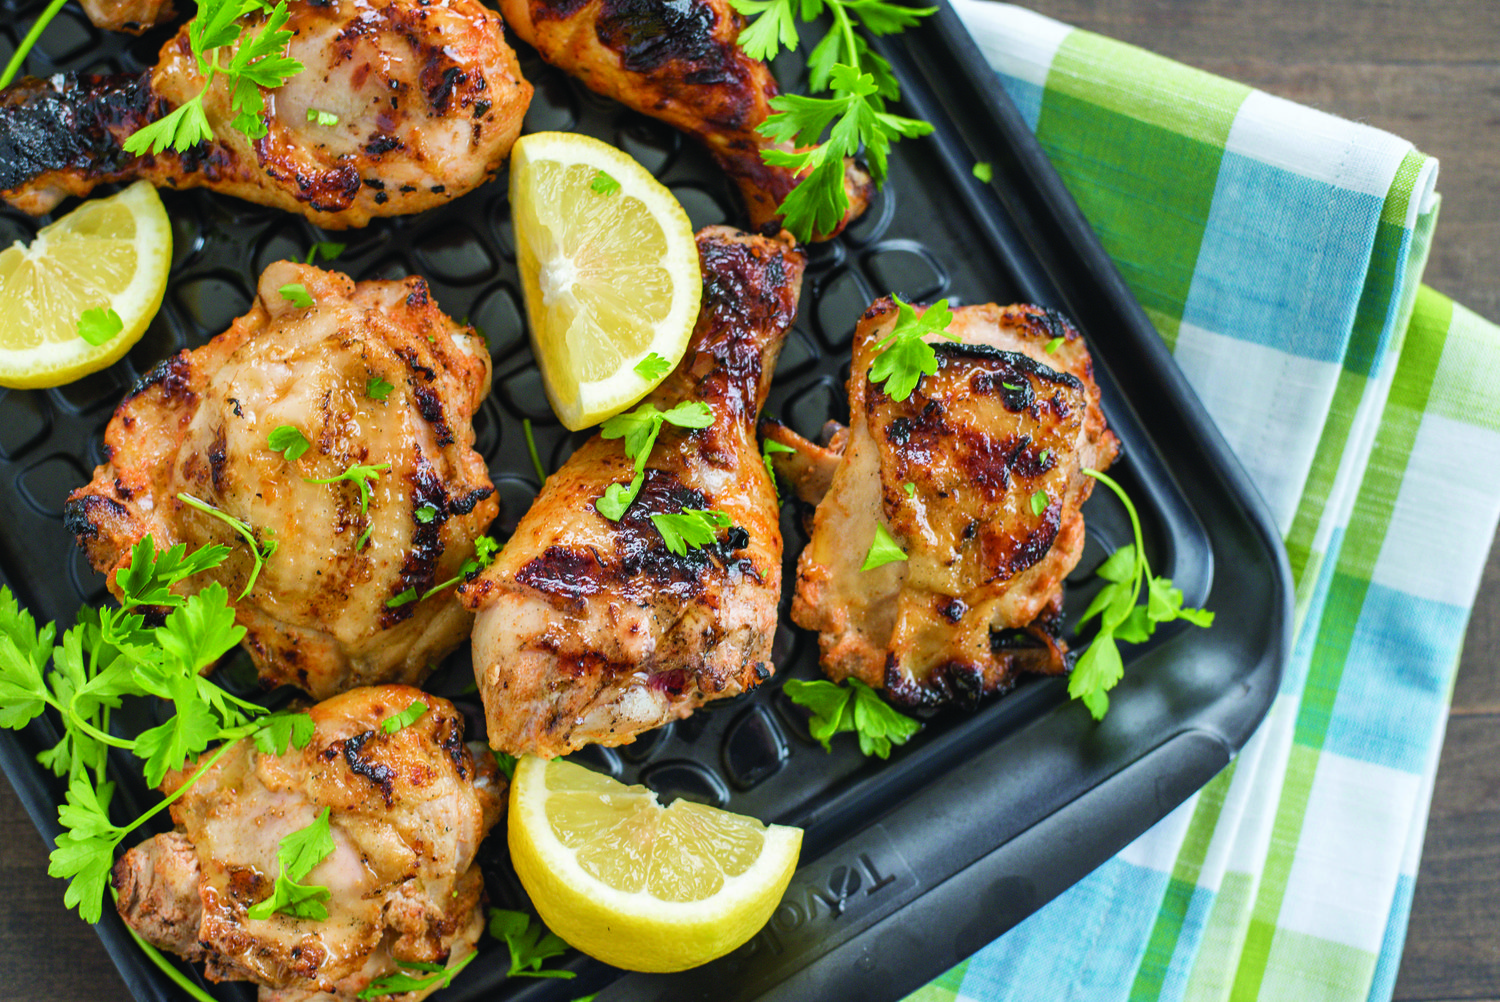 Zesty mustard, spicy Sriracha and rich buttermilk lend a marinated flavor upgrade to basic grilled chicken.